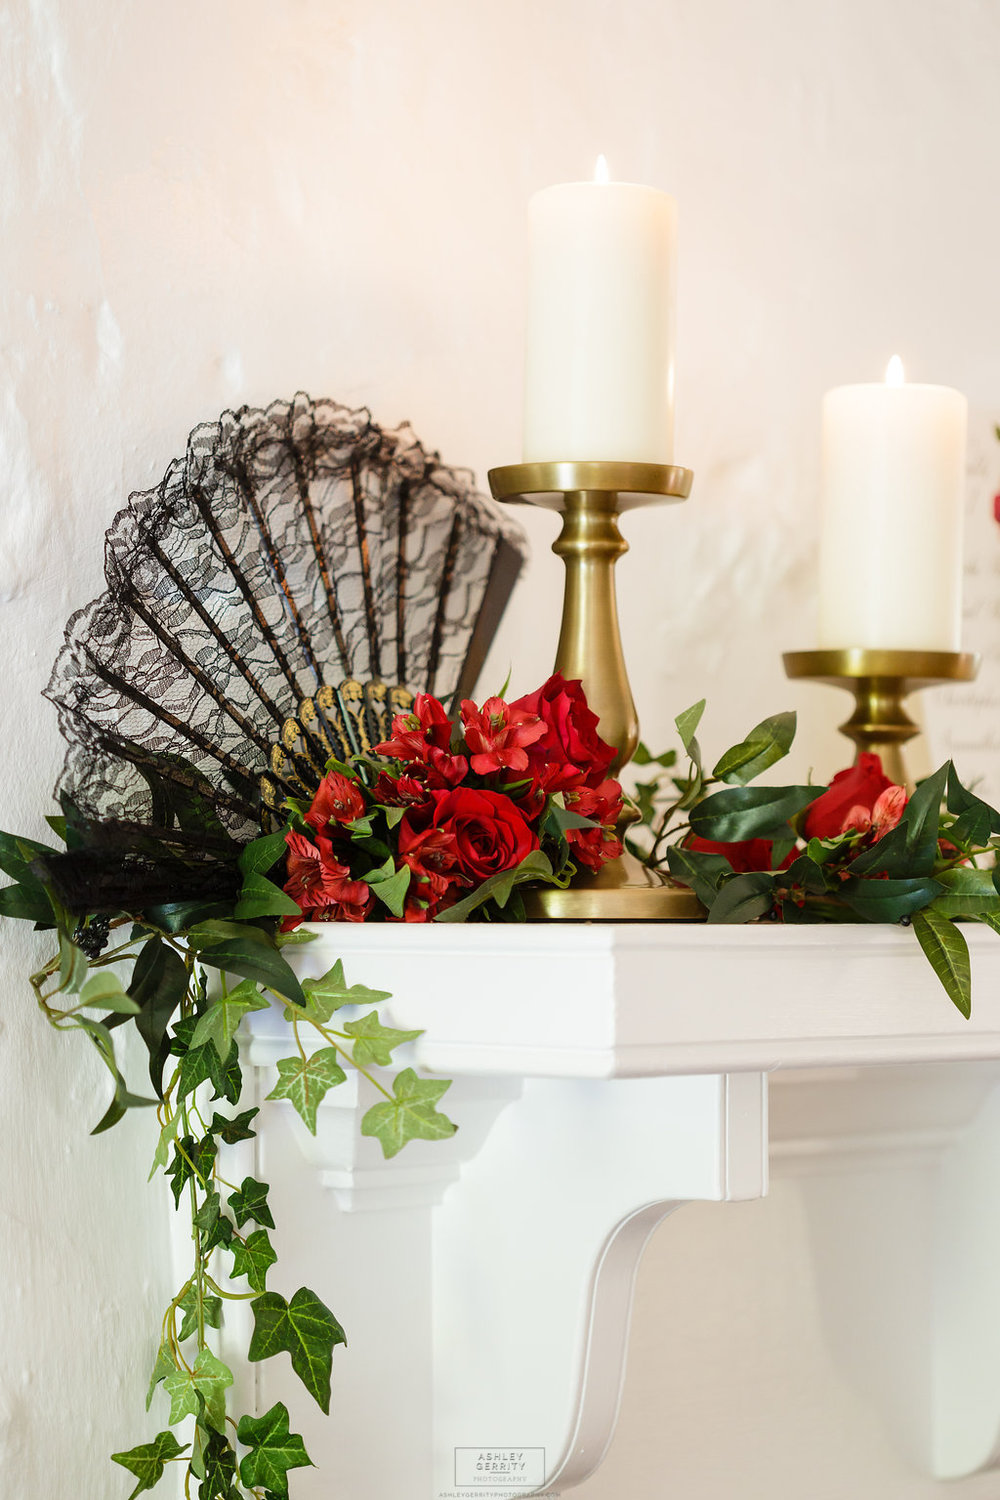 15 Spanish Rose Wedding Inspiration Mantel Decoration Candlelight Black Lace Fan Ivy Red Rose.jpg